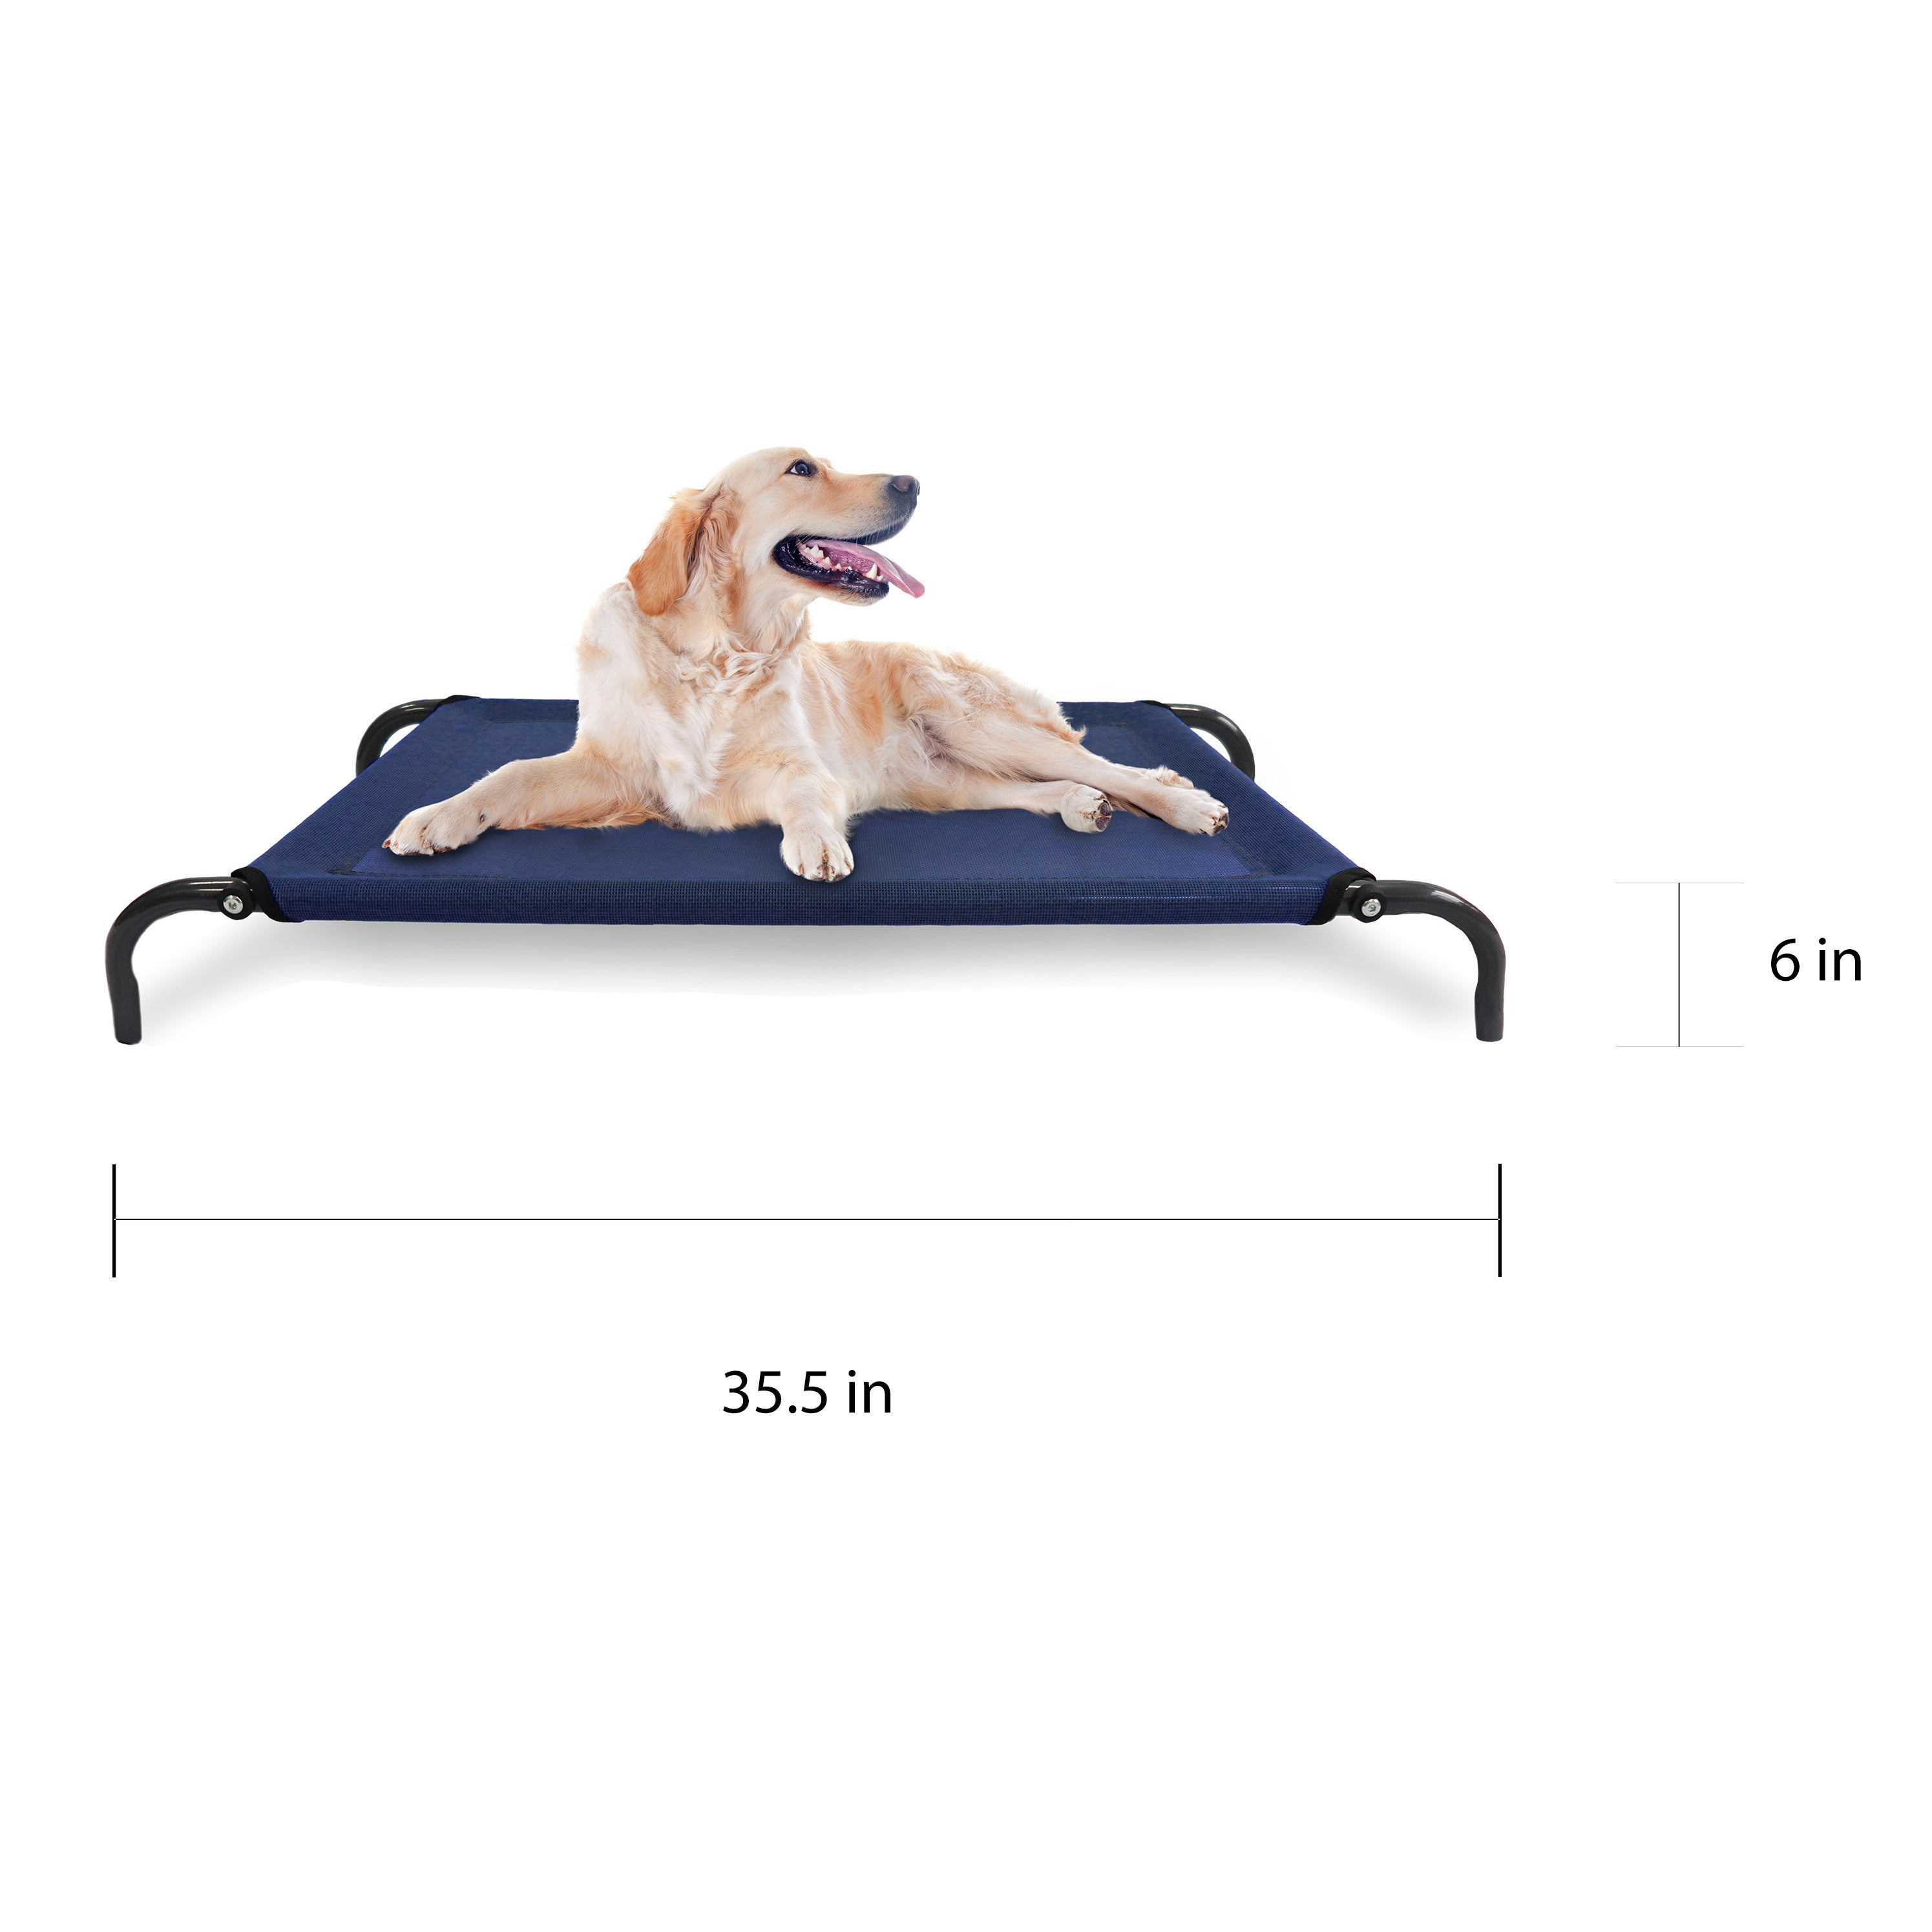 60068c3eb96c Shop FurHaven Steel Frame Elevated Hammock Cot-Style Raised Pet Bed - Free  Shipping On Orders Over $45 - Overstock - 12298495